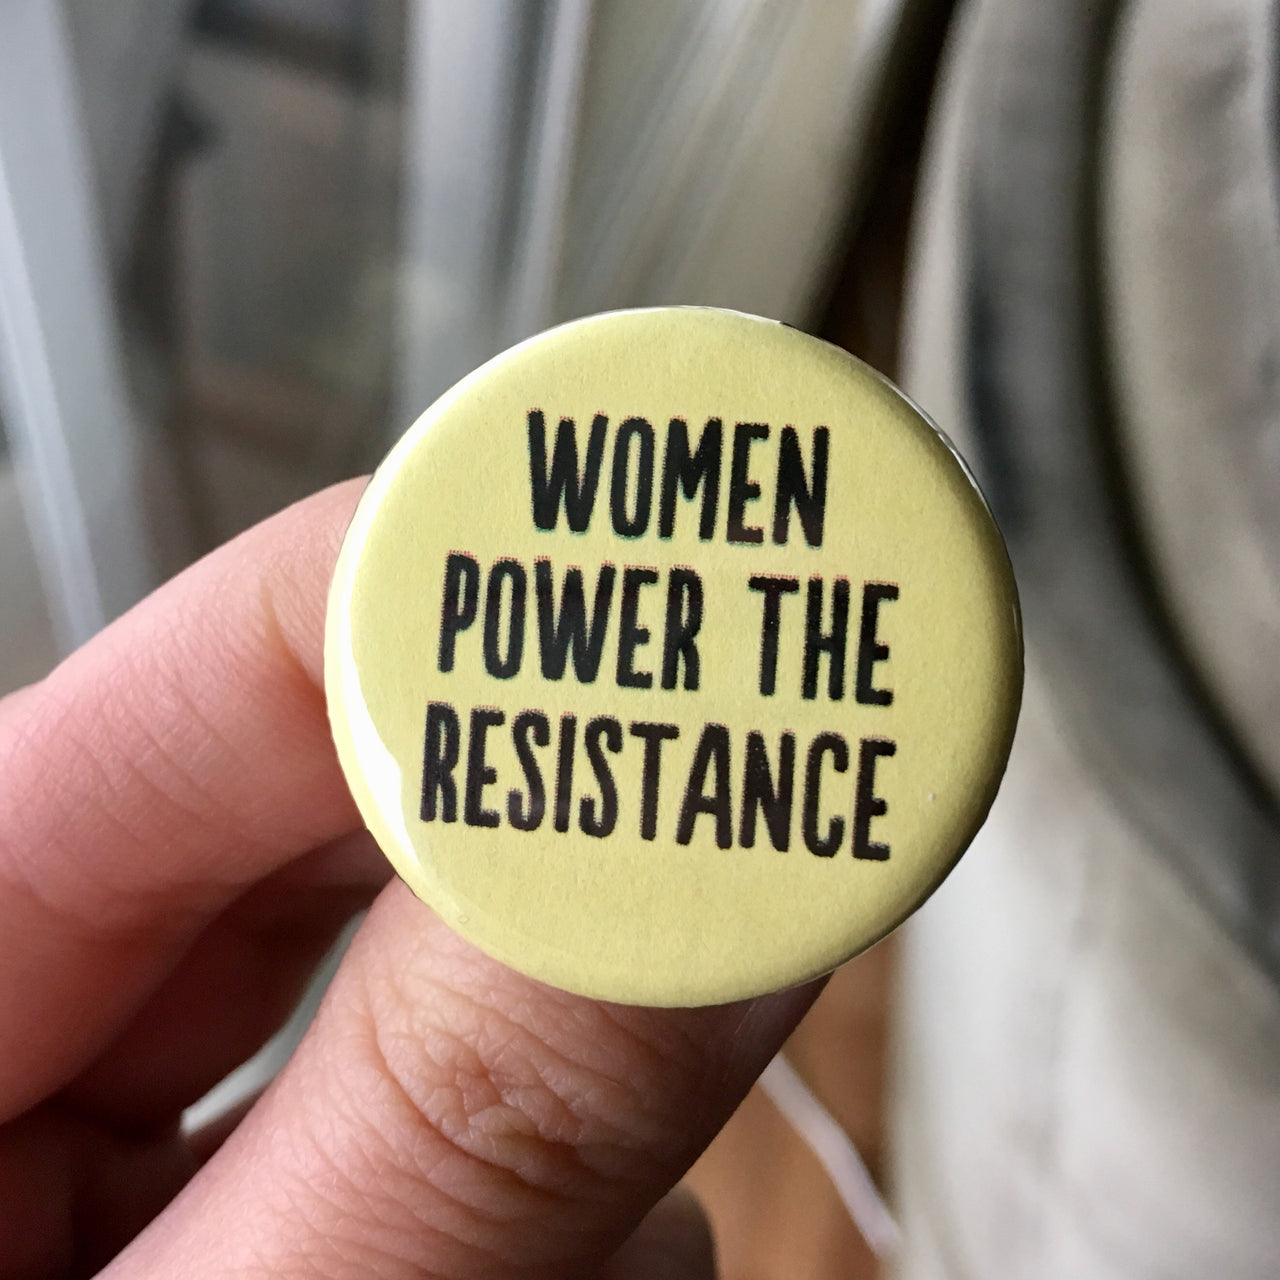 Women power the resistance - Radical Buttons